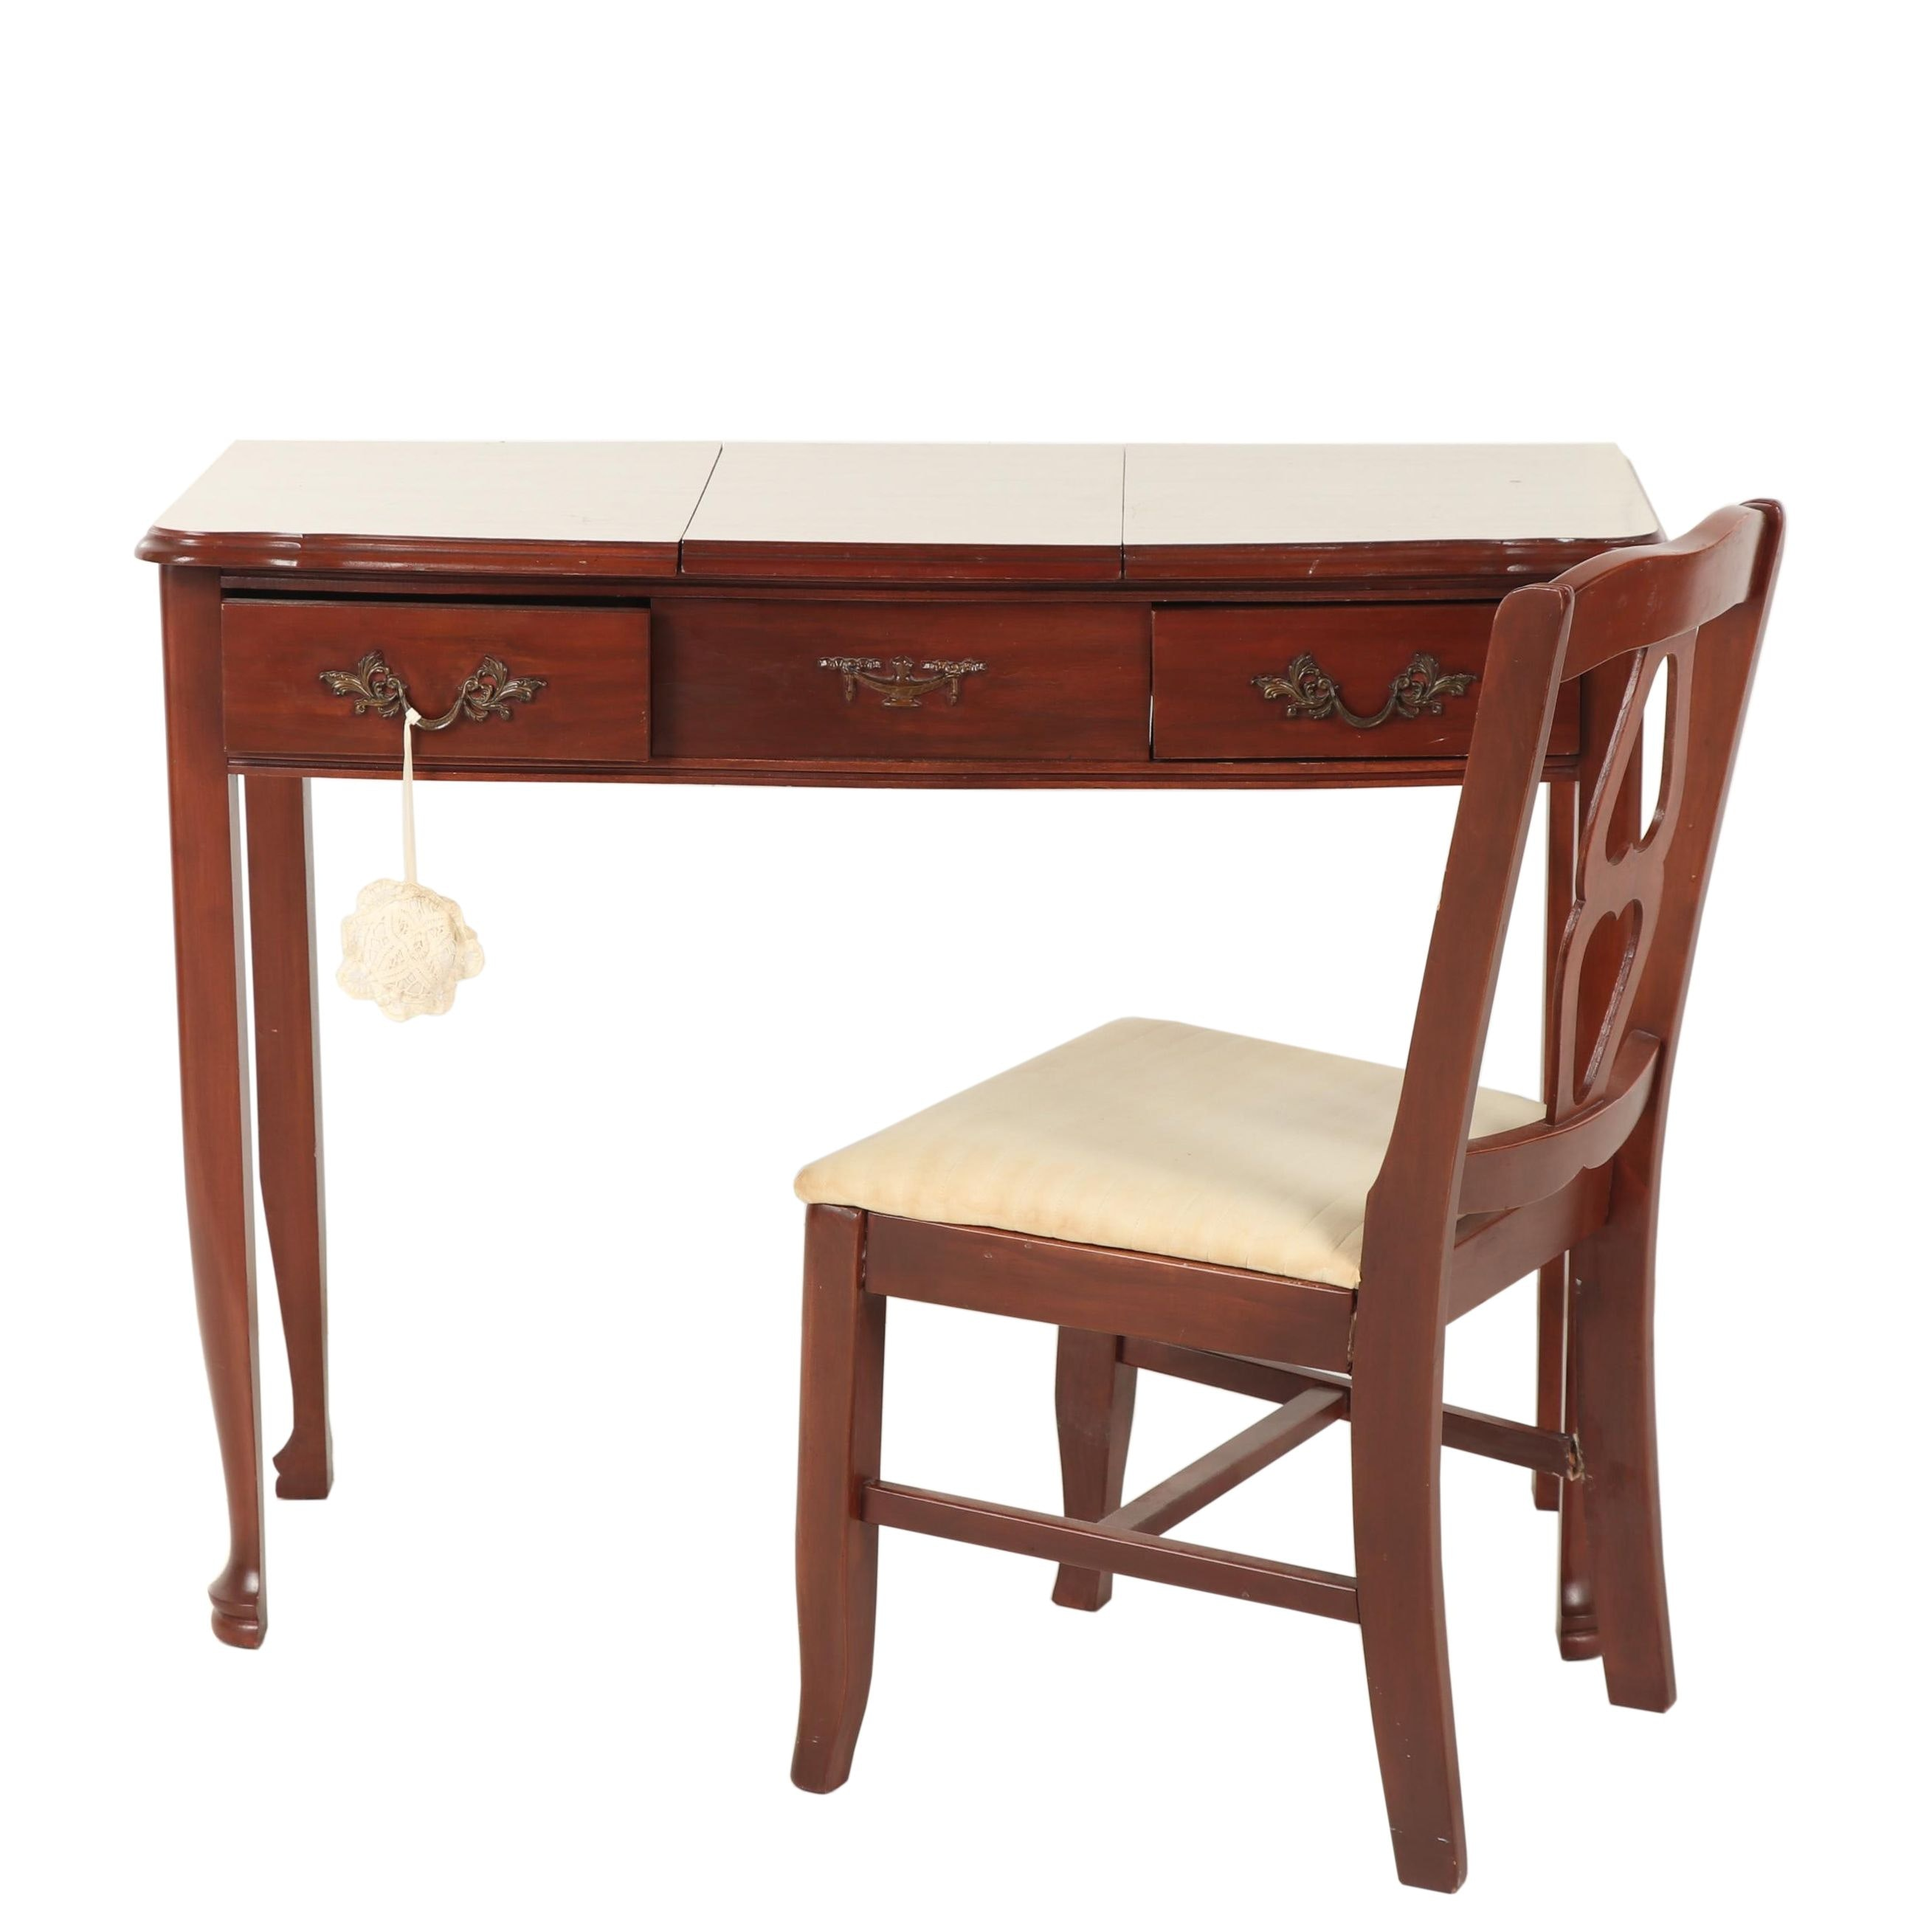 Federal Style Mahogany-Finish Side Chair, Mid-20th Century